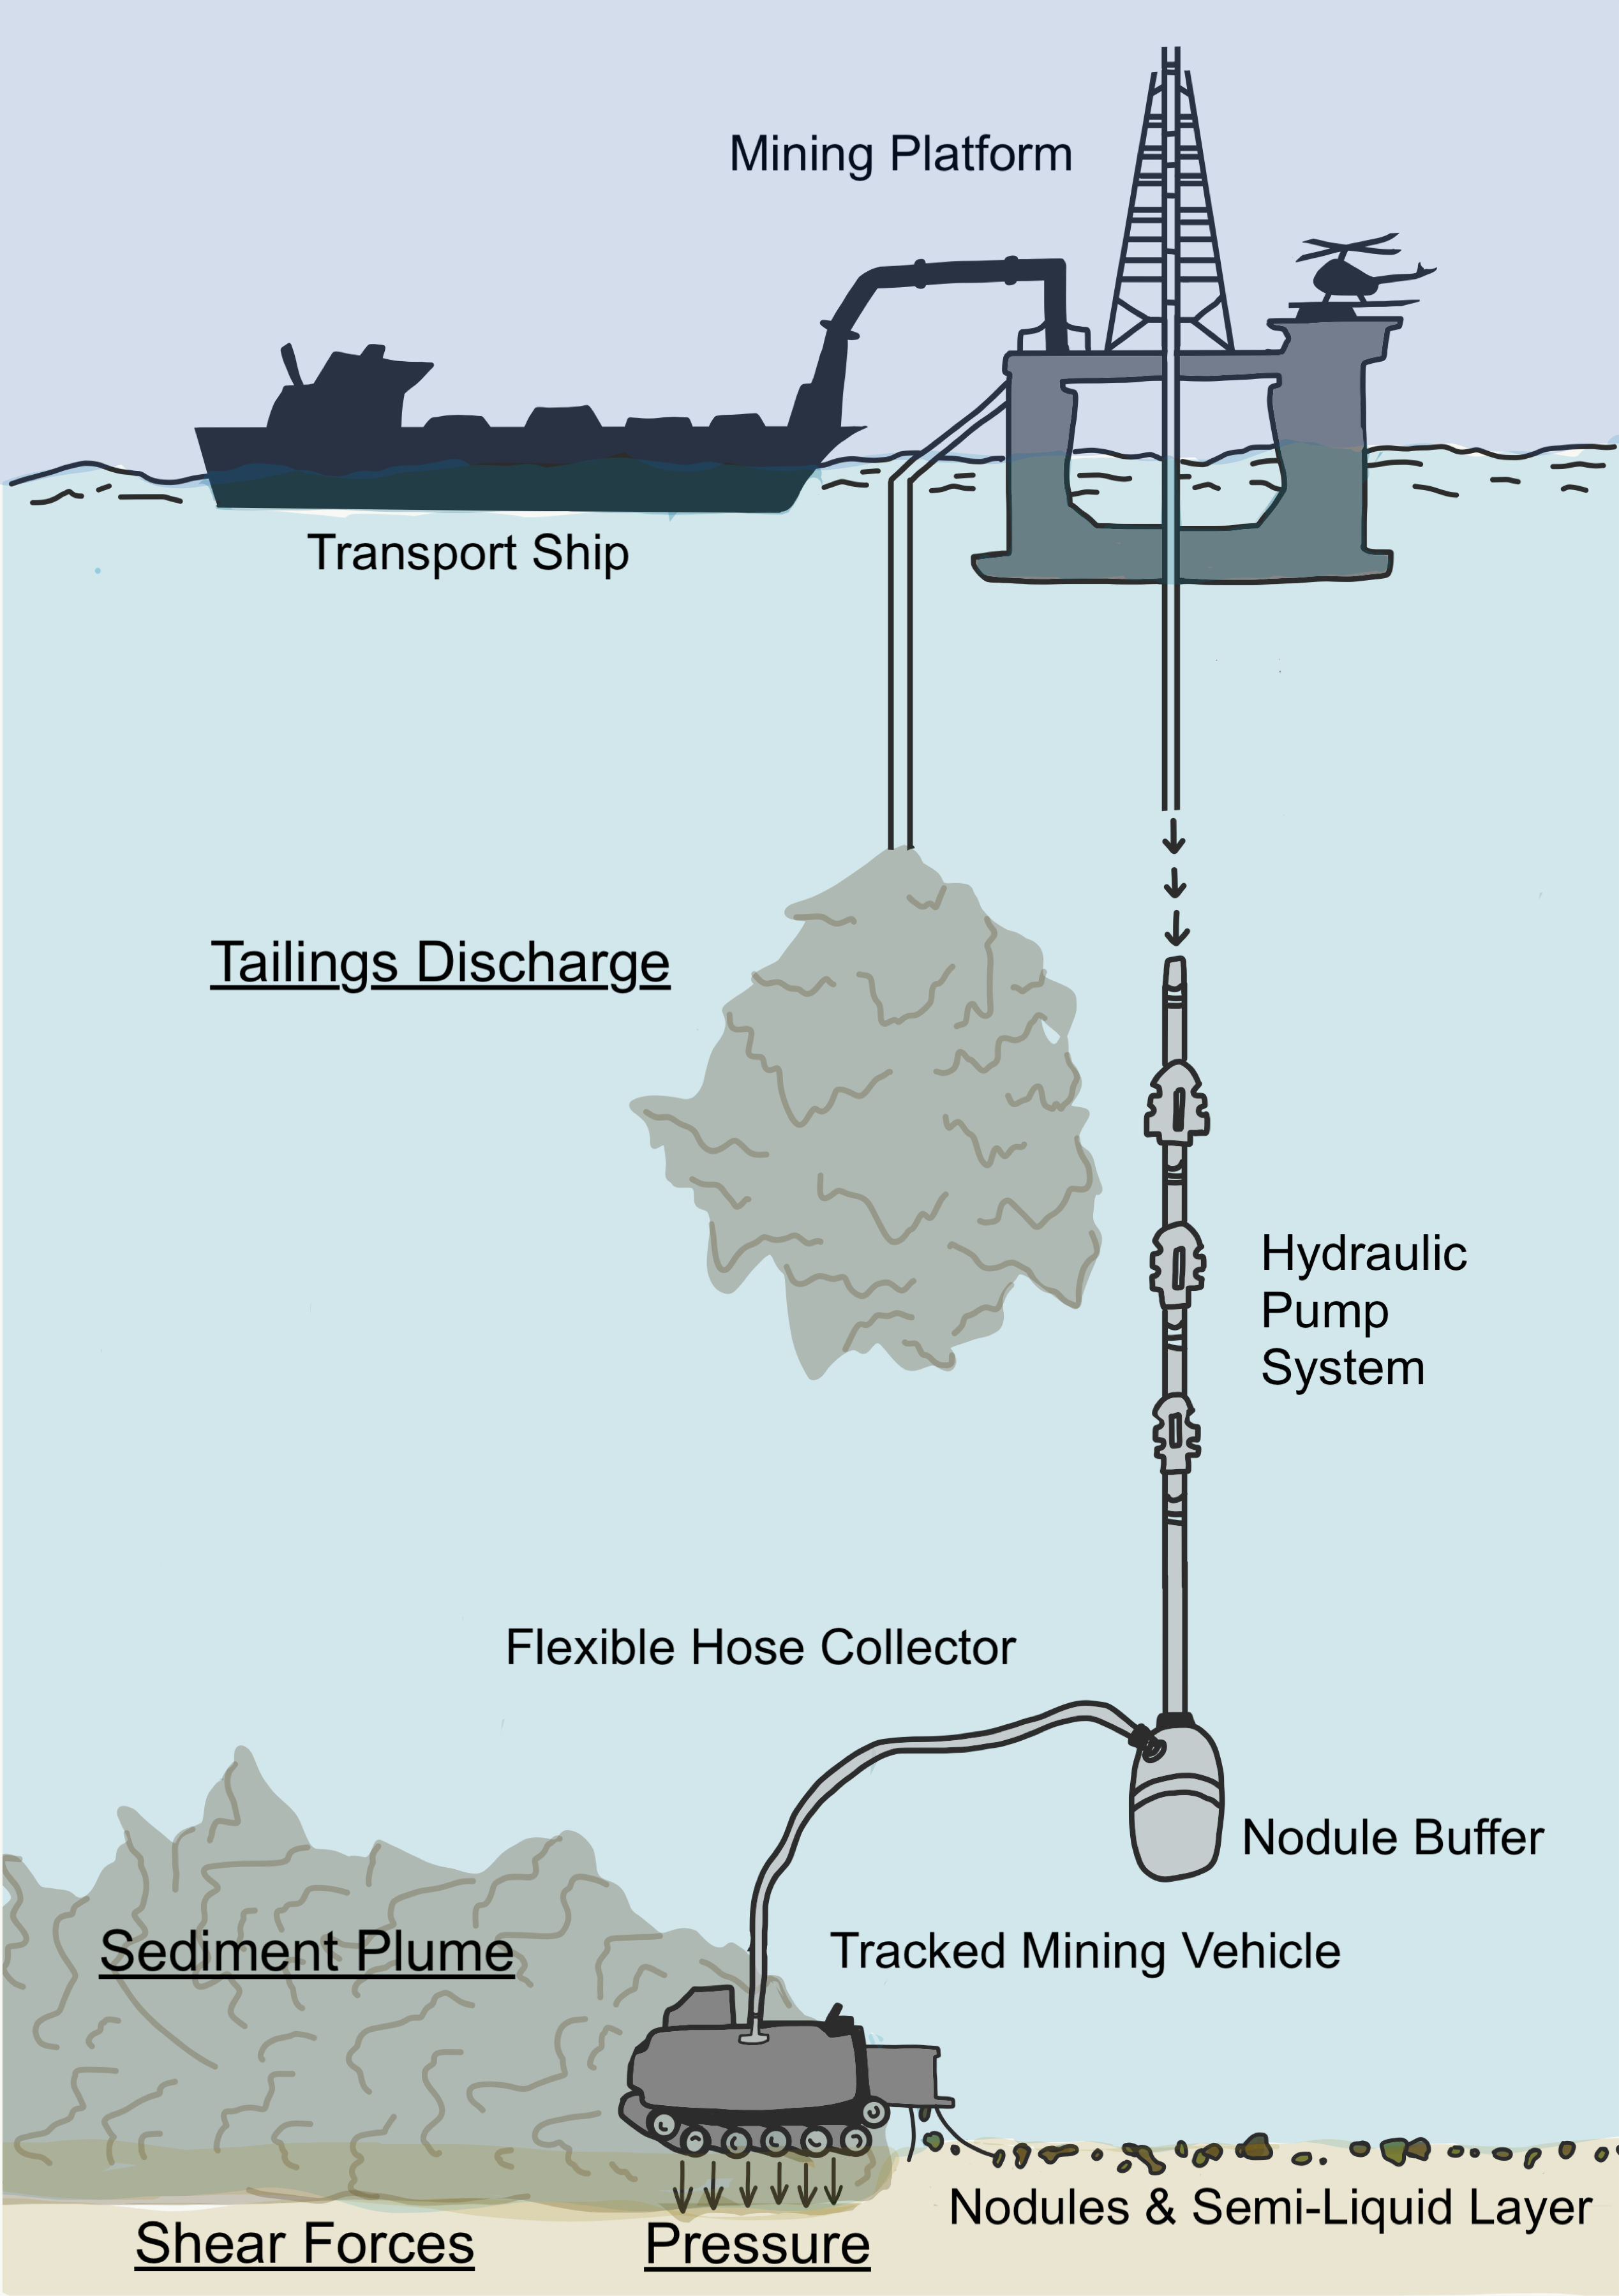 Are we ready to mine the seafloor?